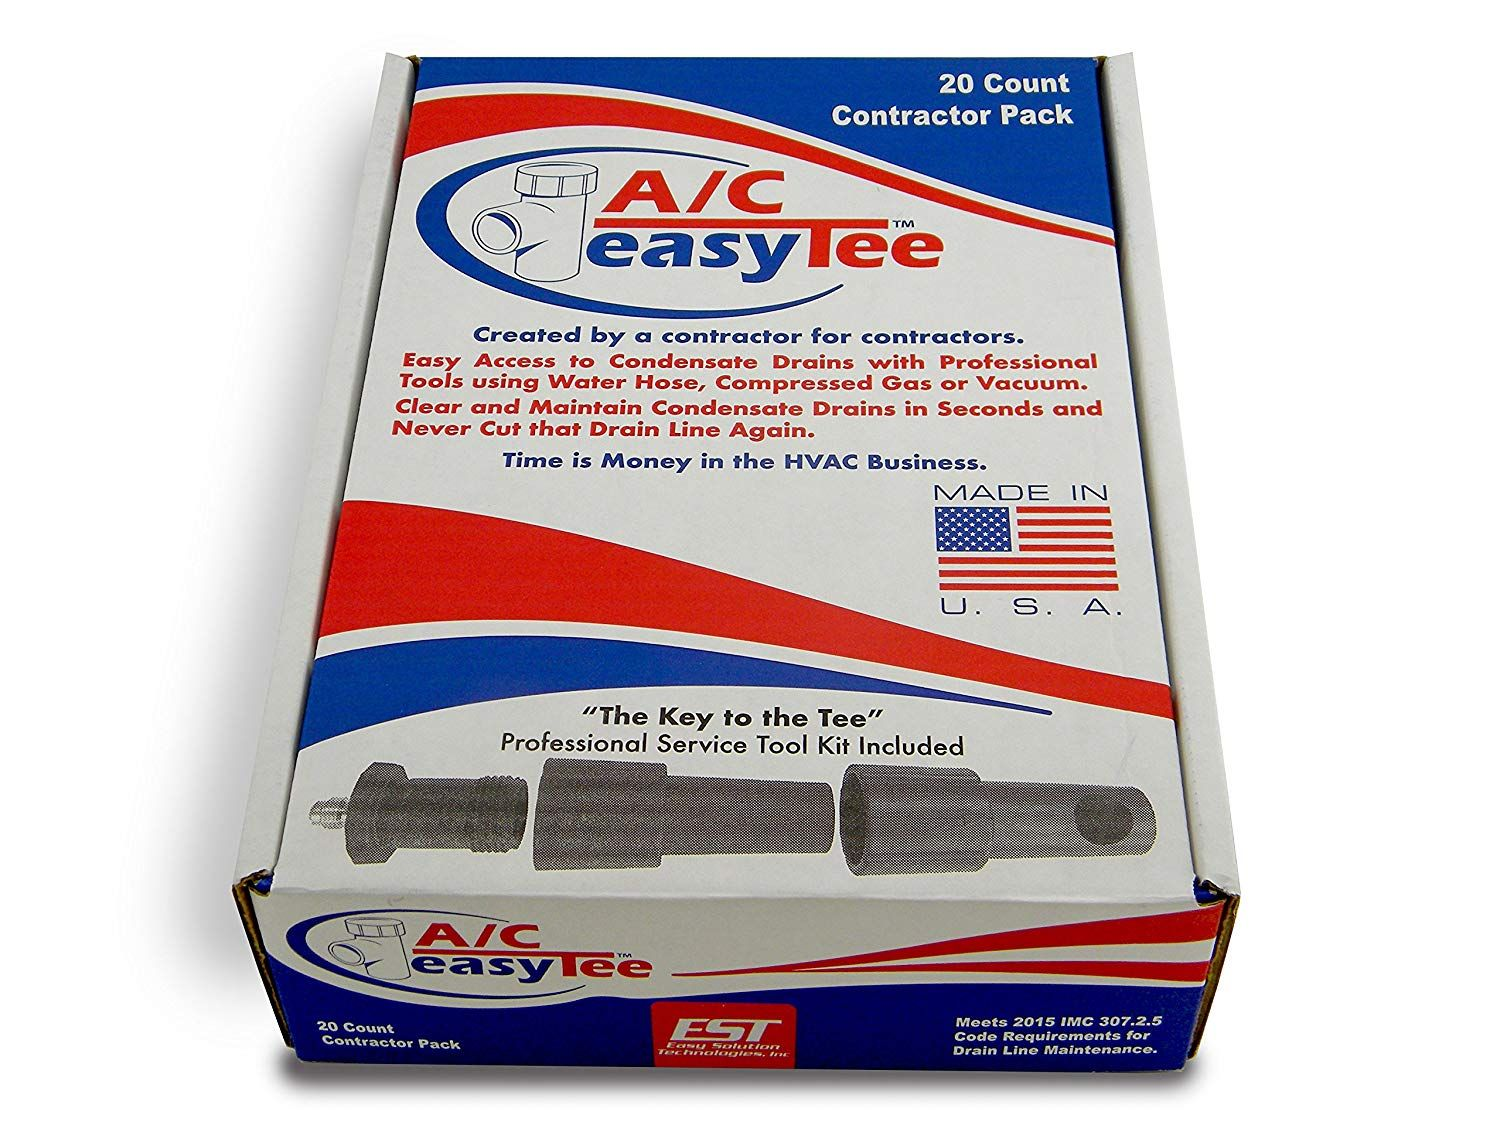 A C Easy Tee Contractor Pack Read More Reviews Of The Product By Visiting The Link On The Image This Is An Affiliate Lin Hvac Business Drains Contractors